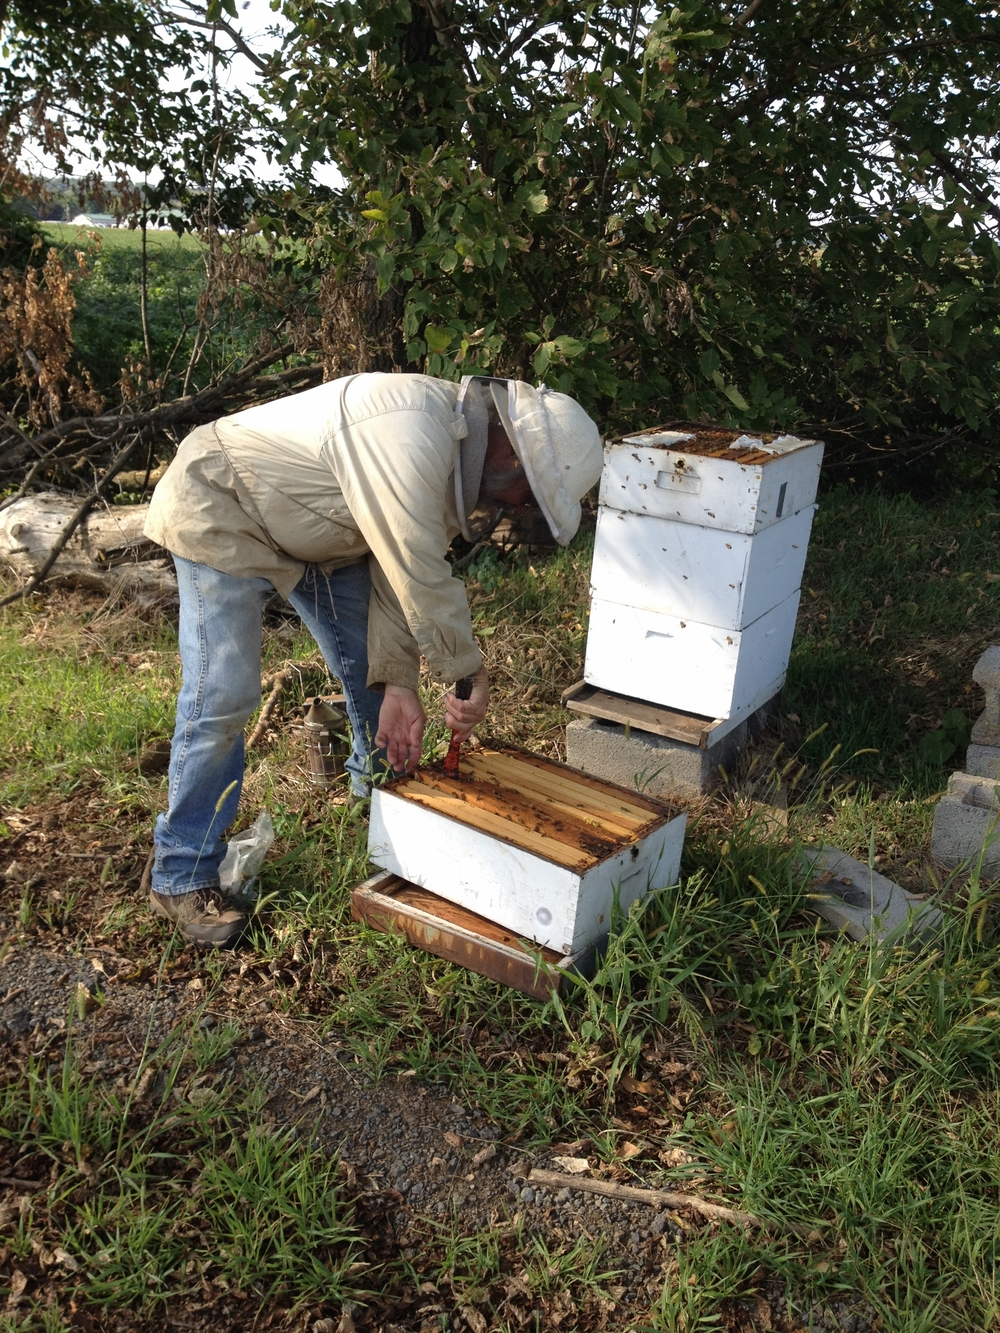 Mr. Clause checking the hive.